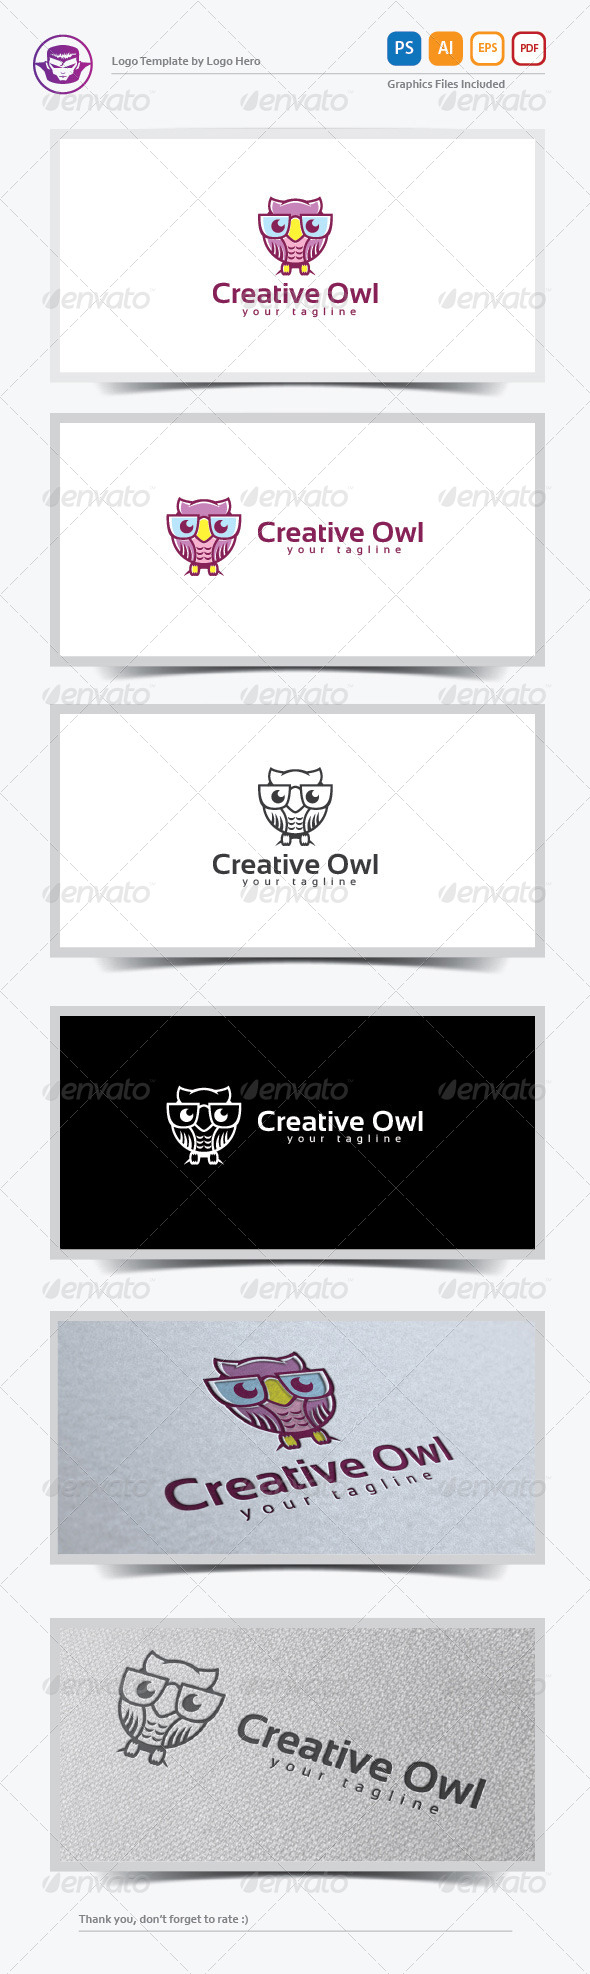 GraphicRiver Creative Owl Logo Template 8199078